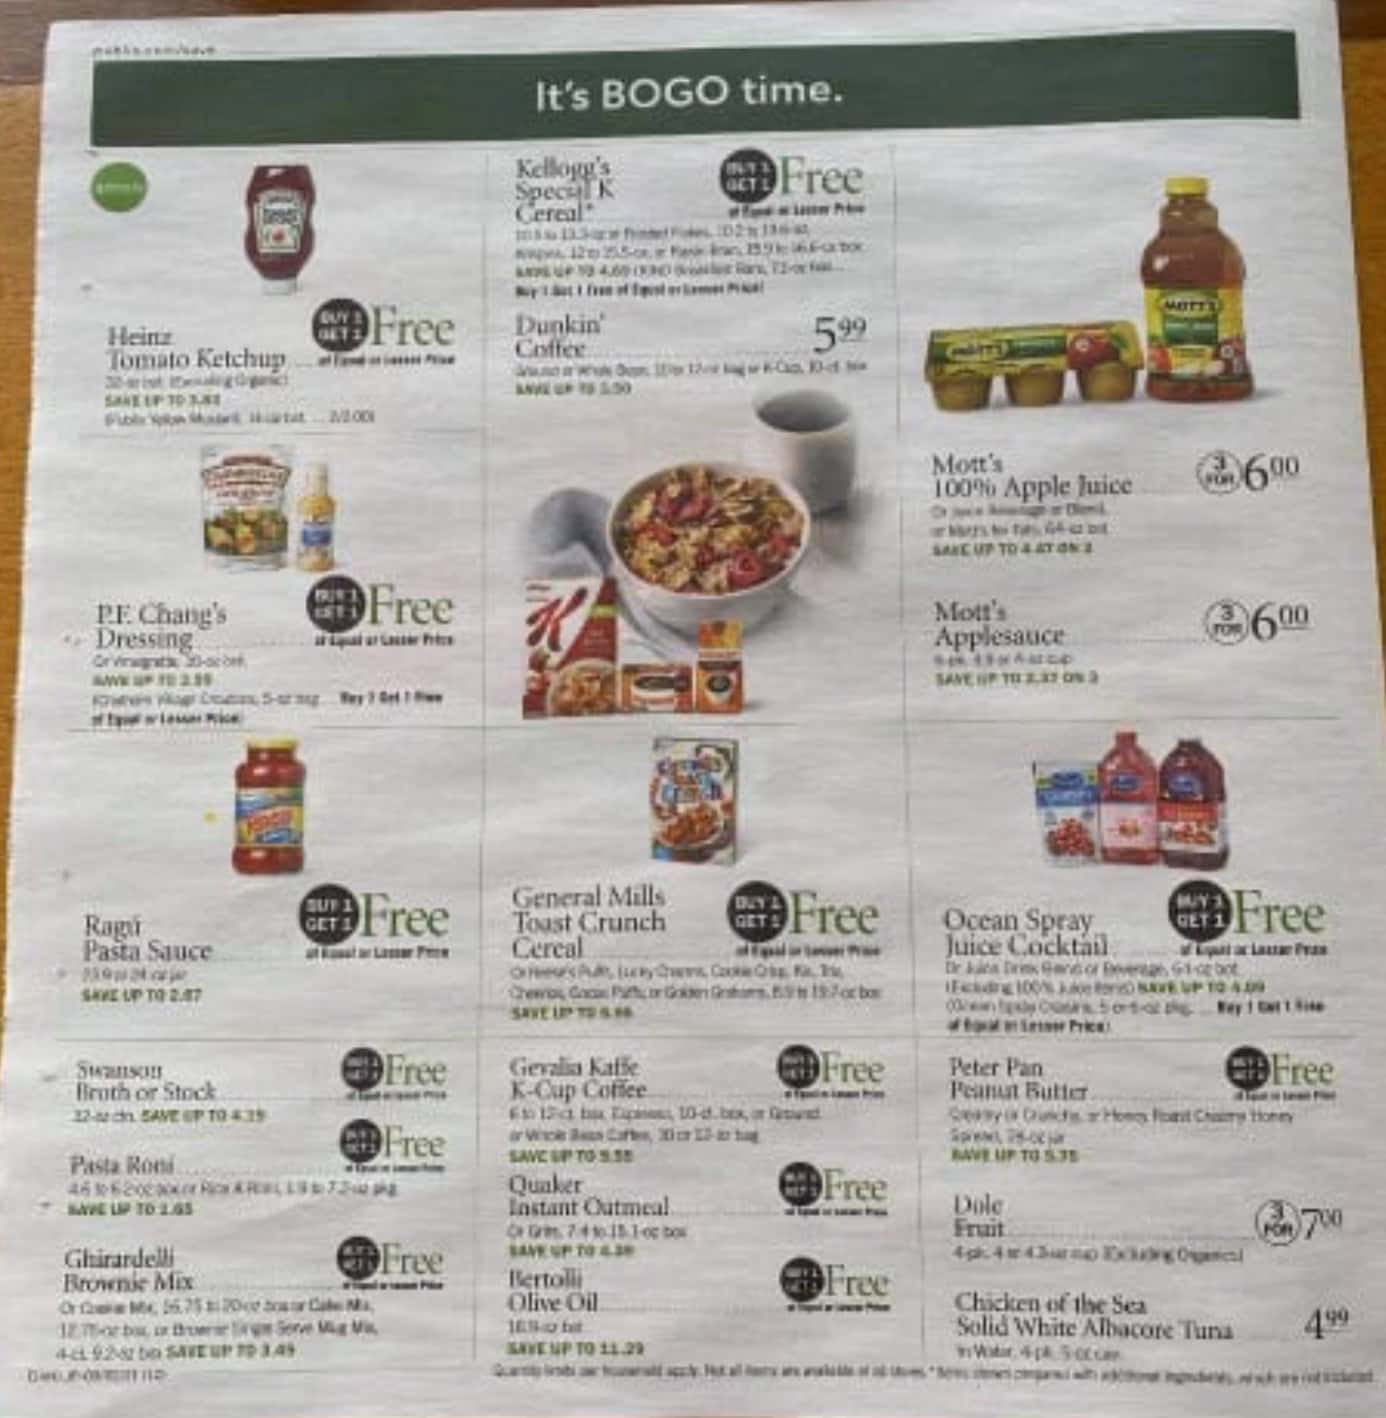 publix_weekly_ad_090121_12